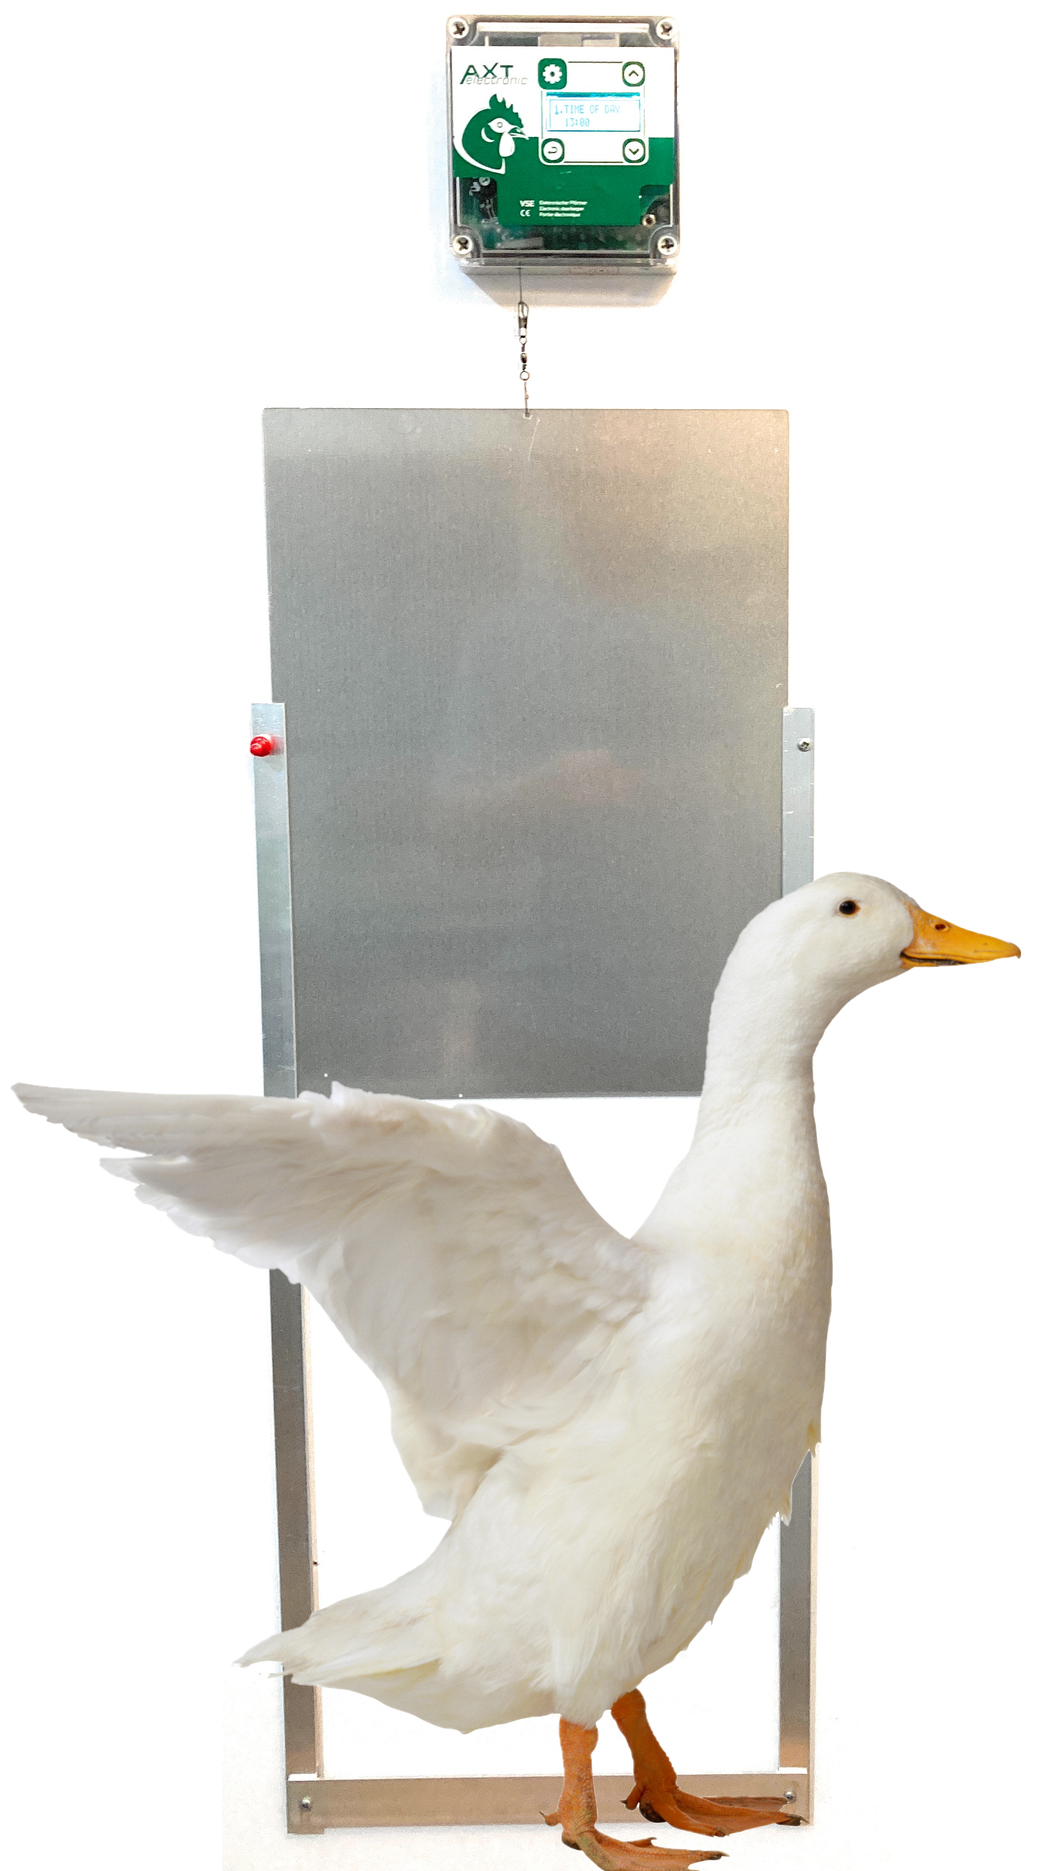 Automatic Programmable Duck Door Opener- Complete Kit - Fits All Breeds Ducks-Cheeper Keeper